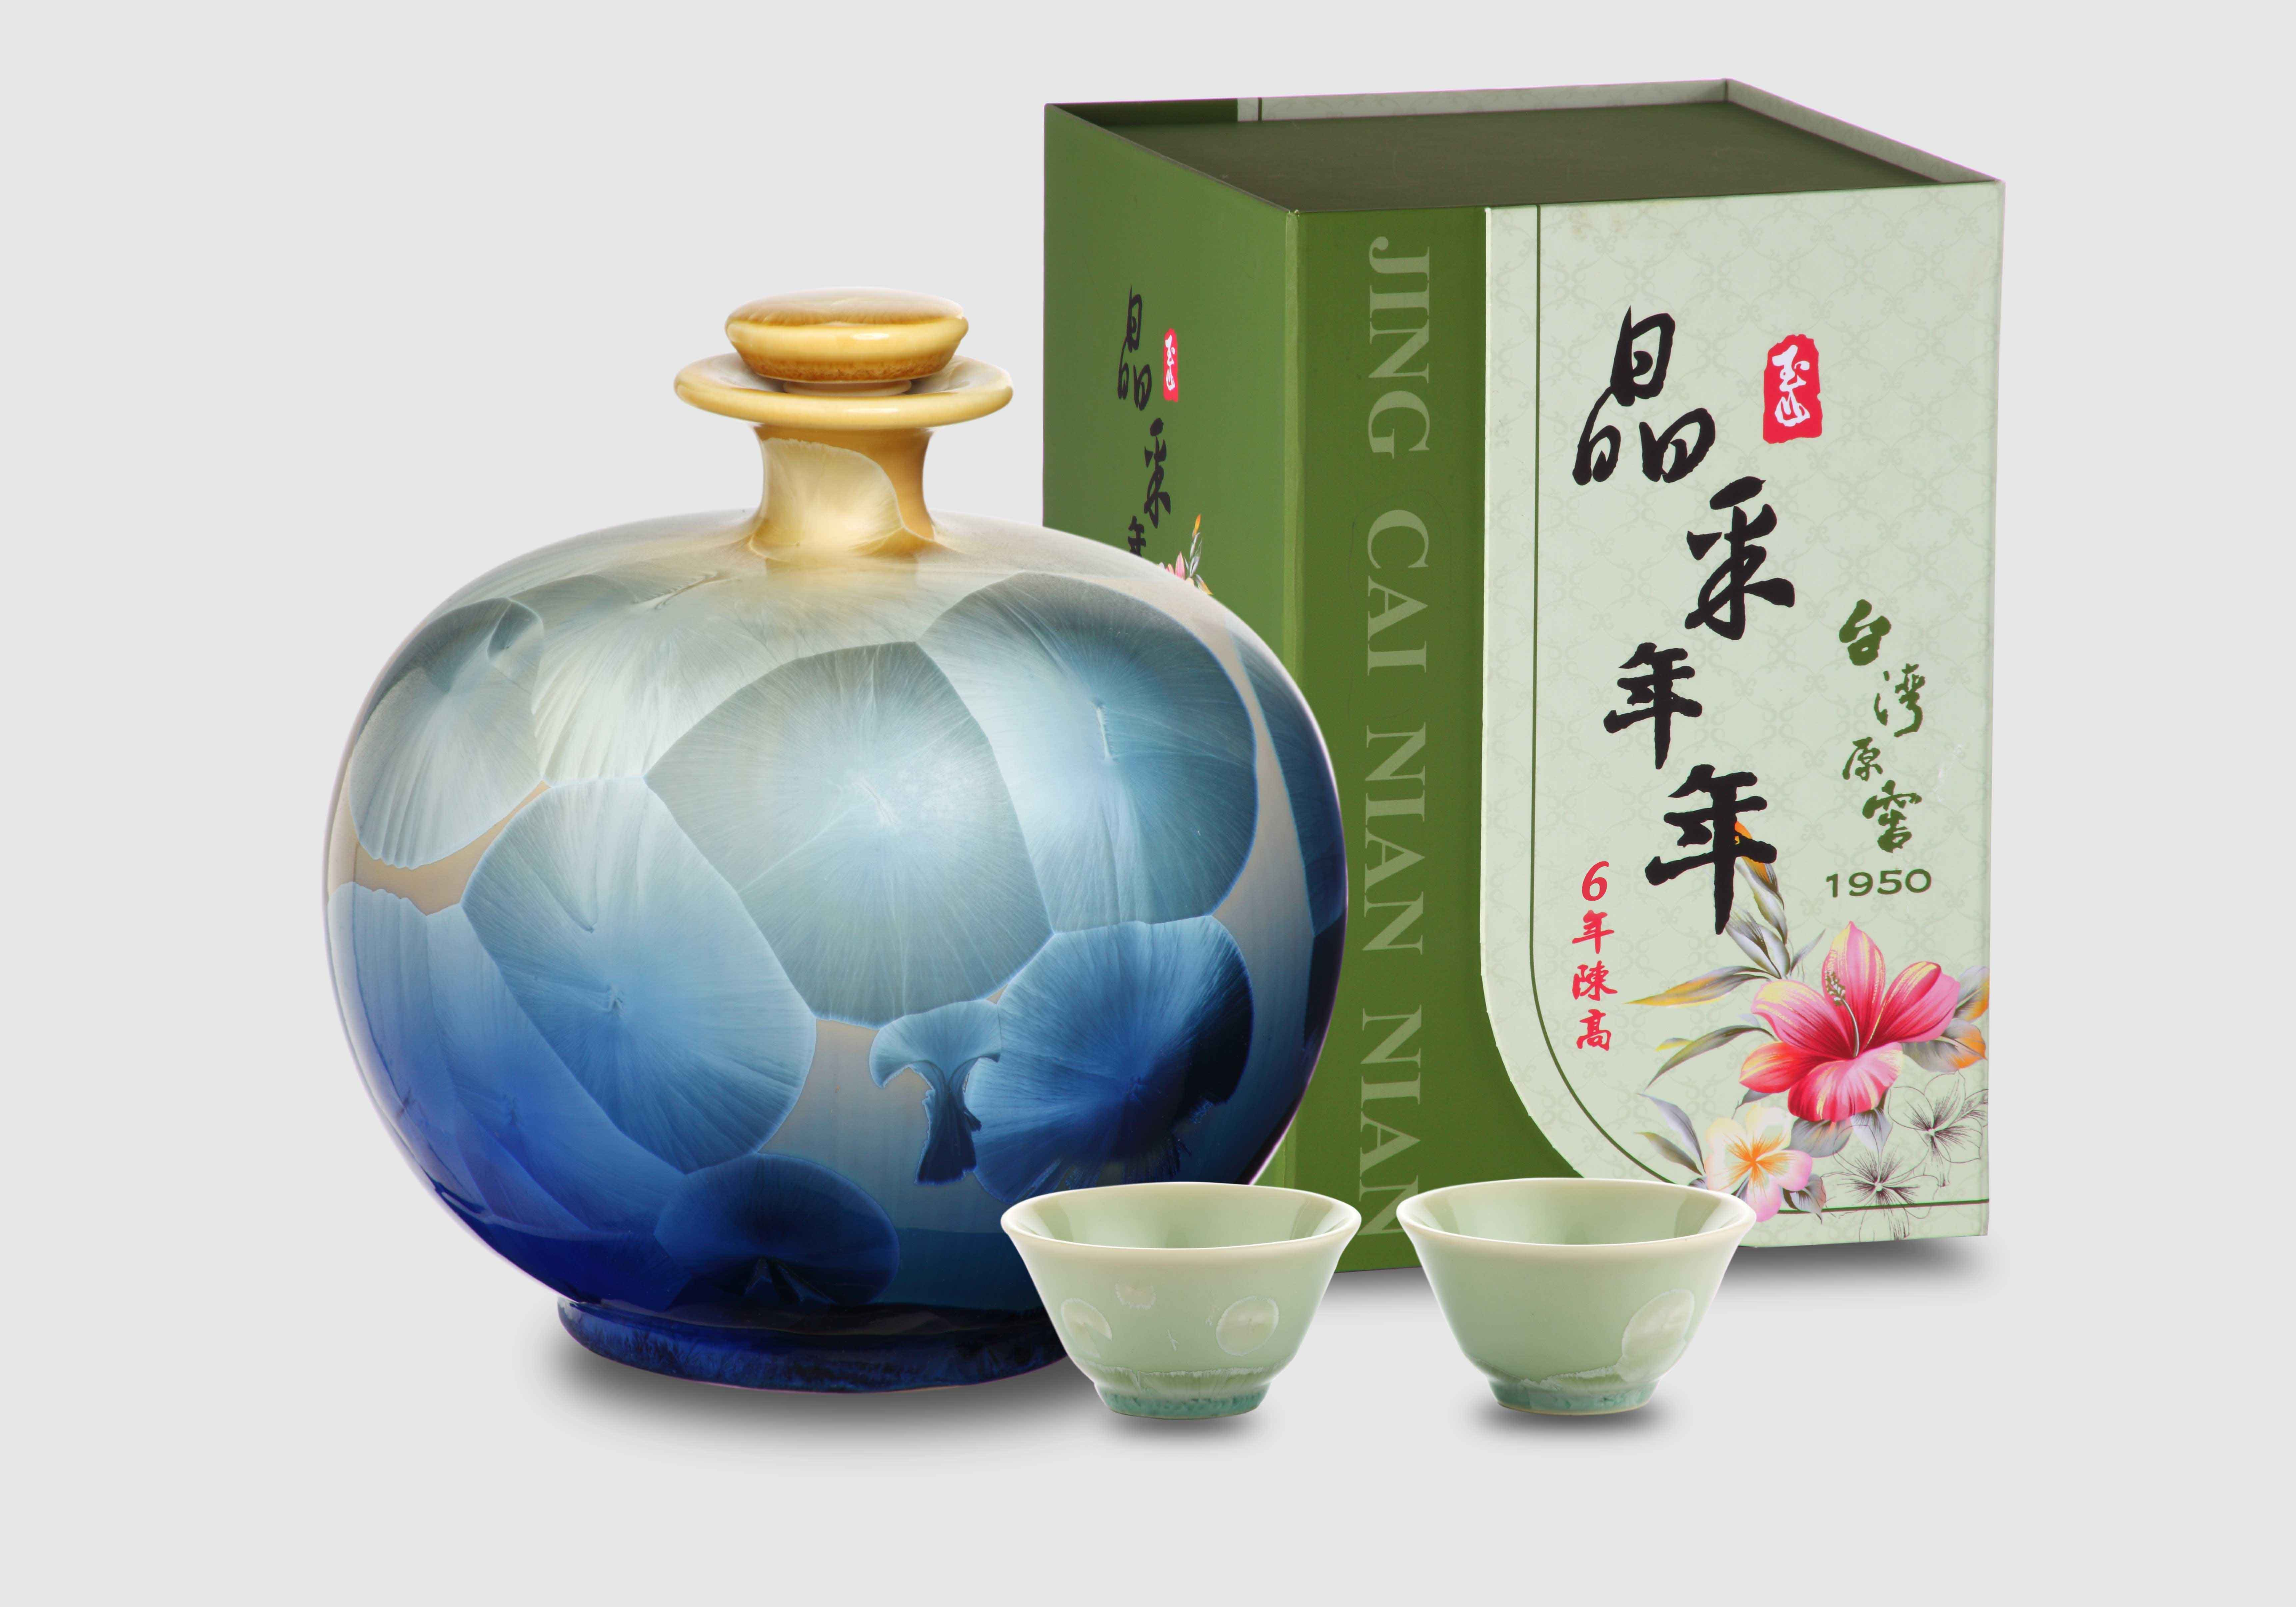 FEATURING PRODUCT IN AUGUST- Jing Cai Nian Nian